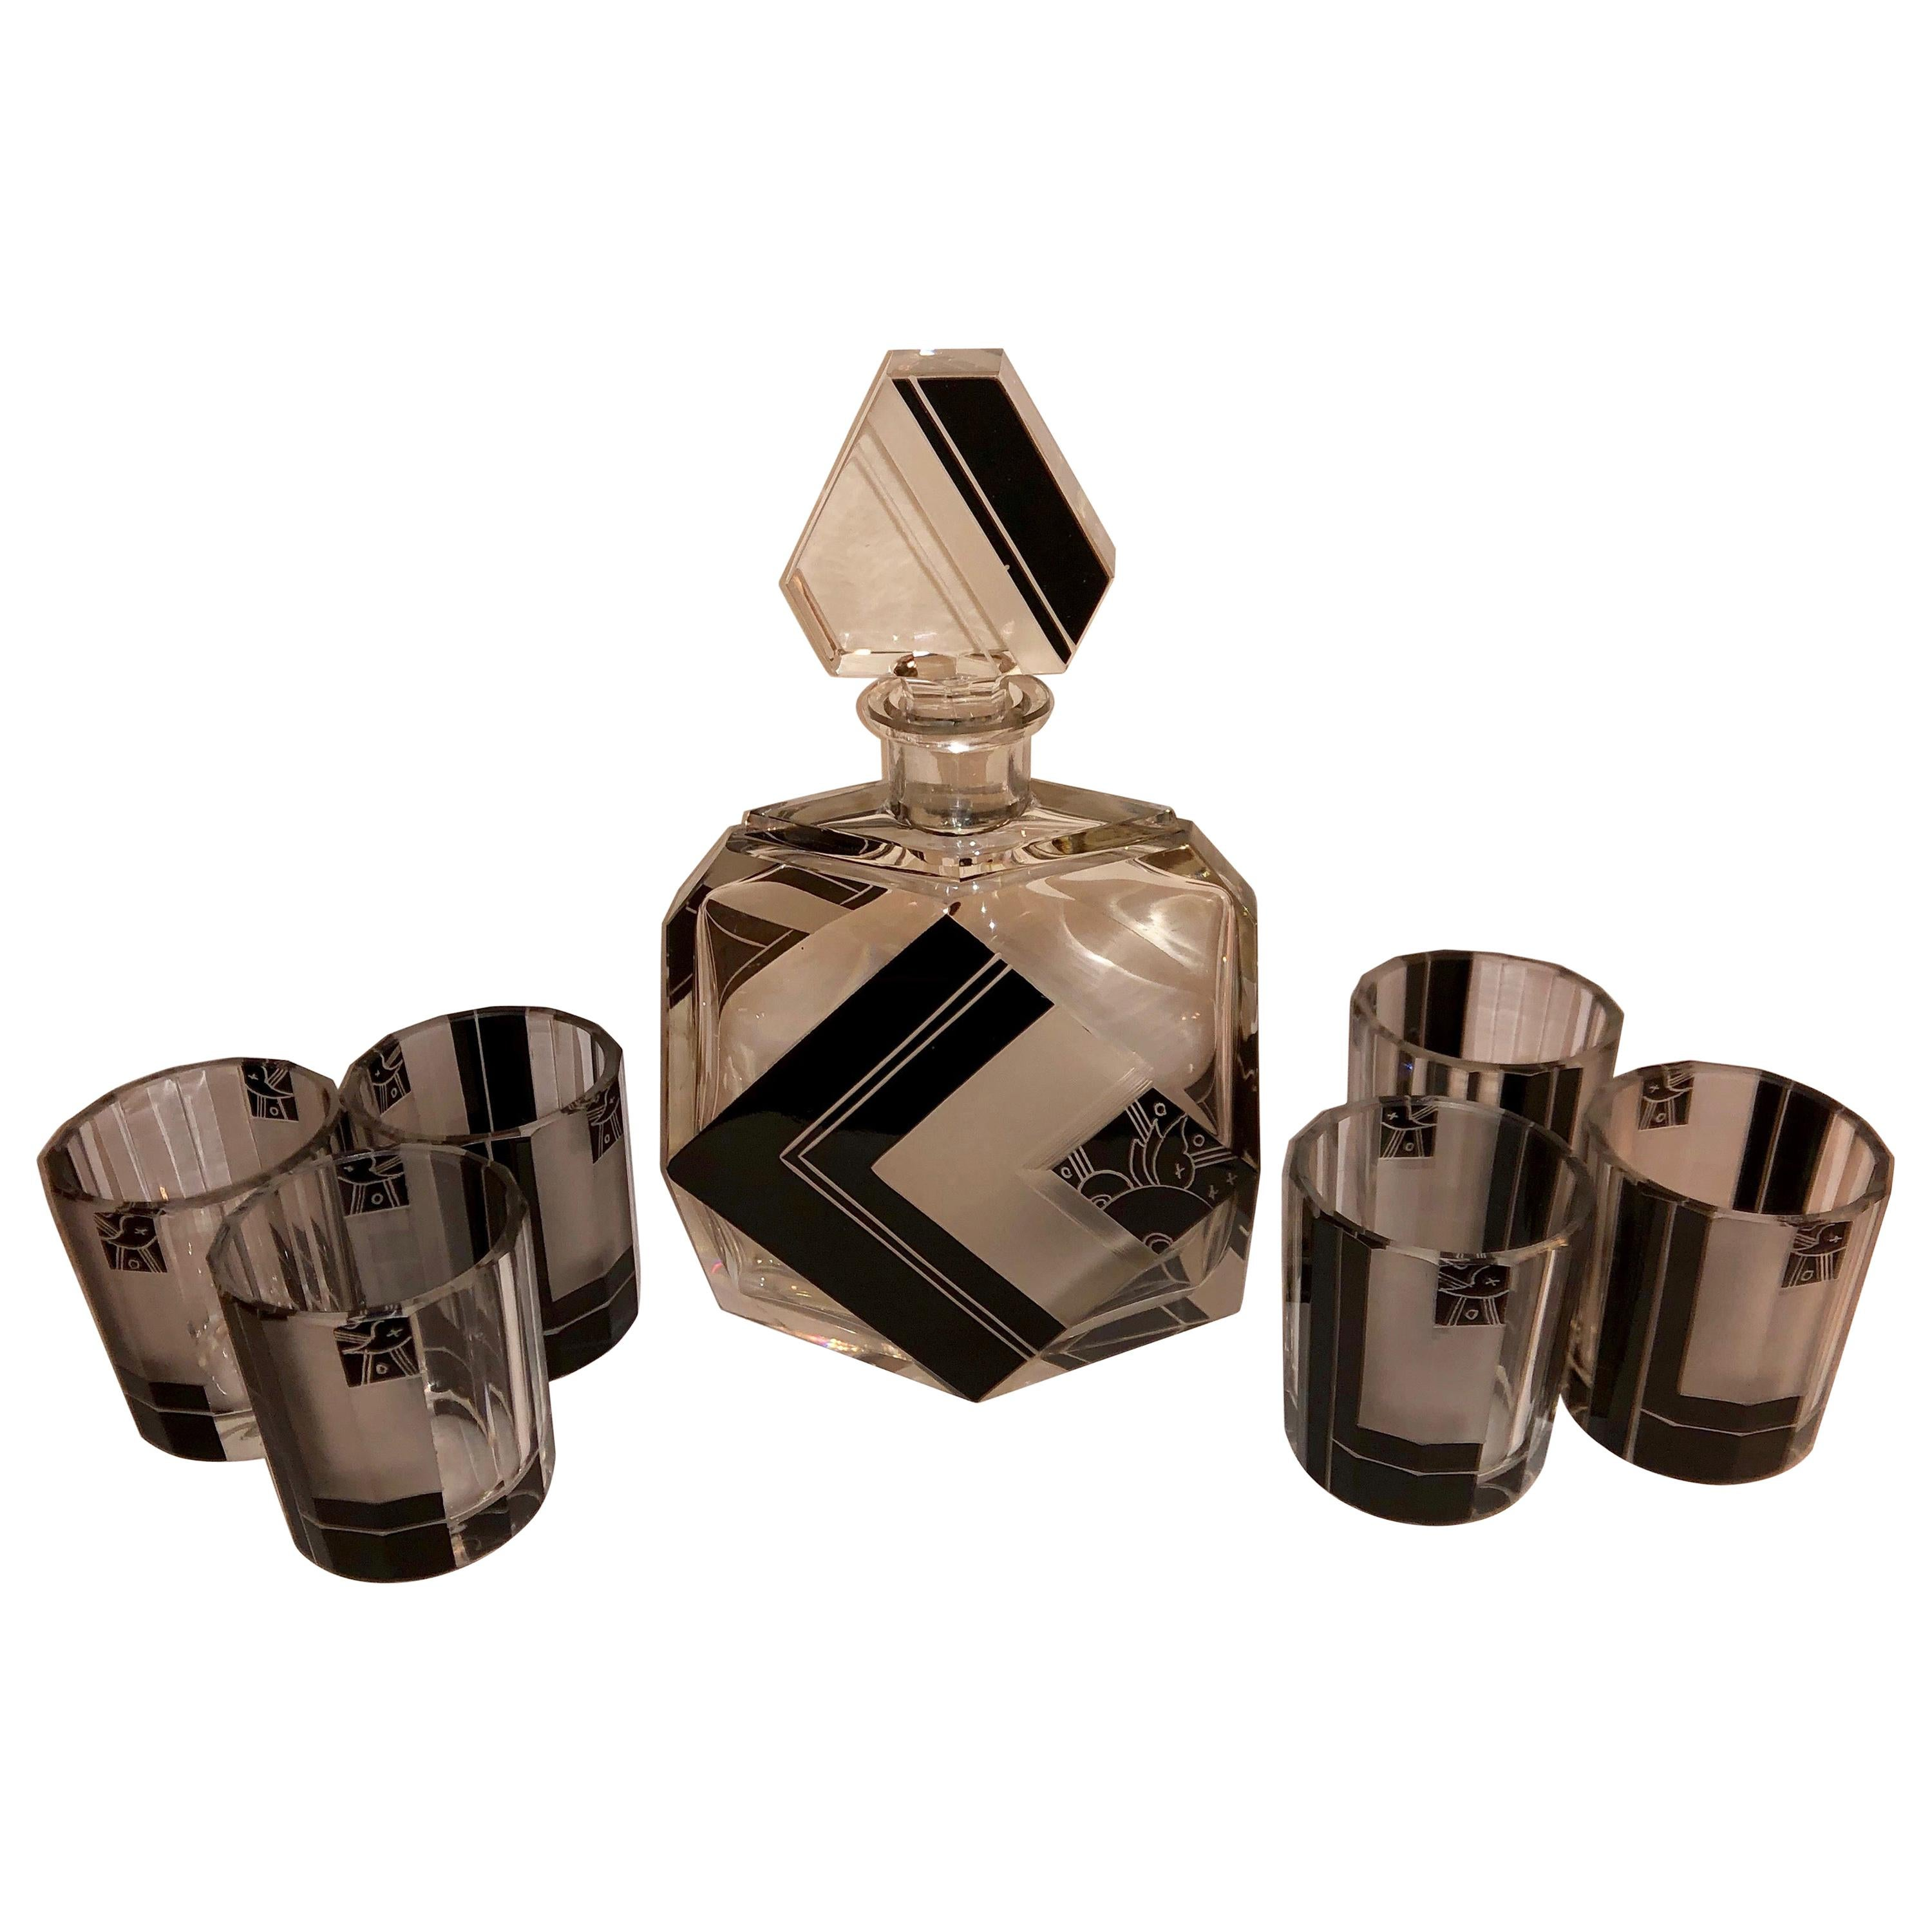 Czech Art Deco Whiskey Set Decanter and Glasses